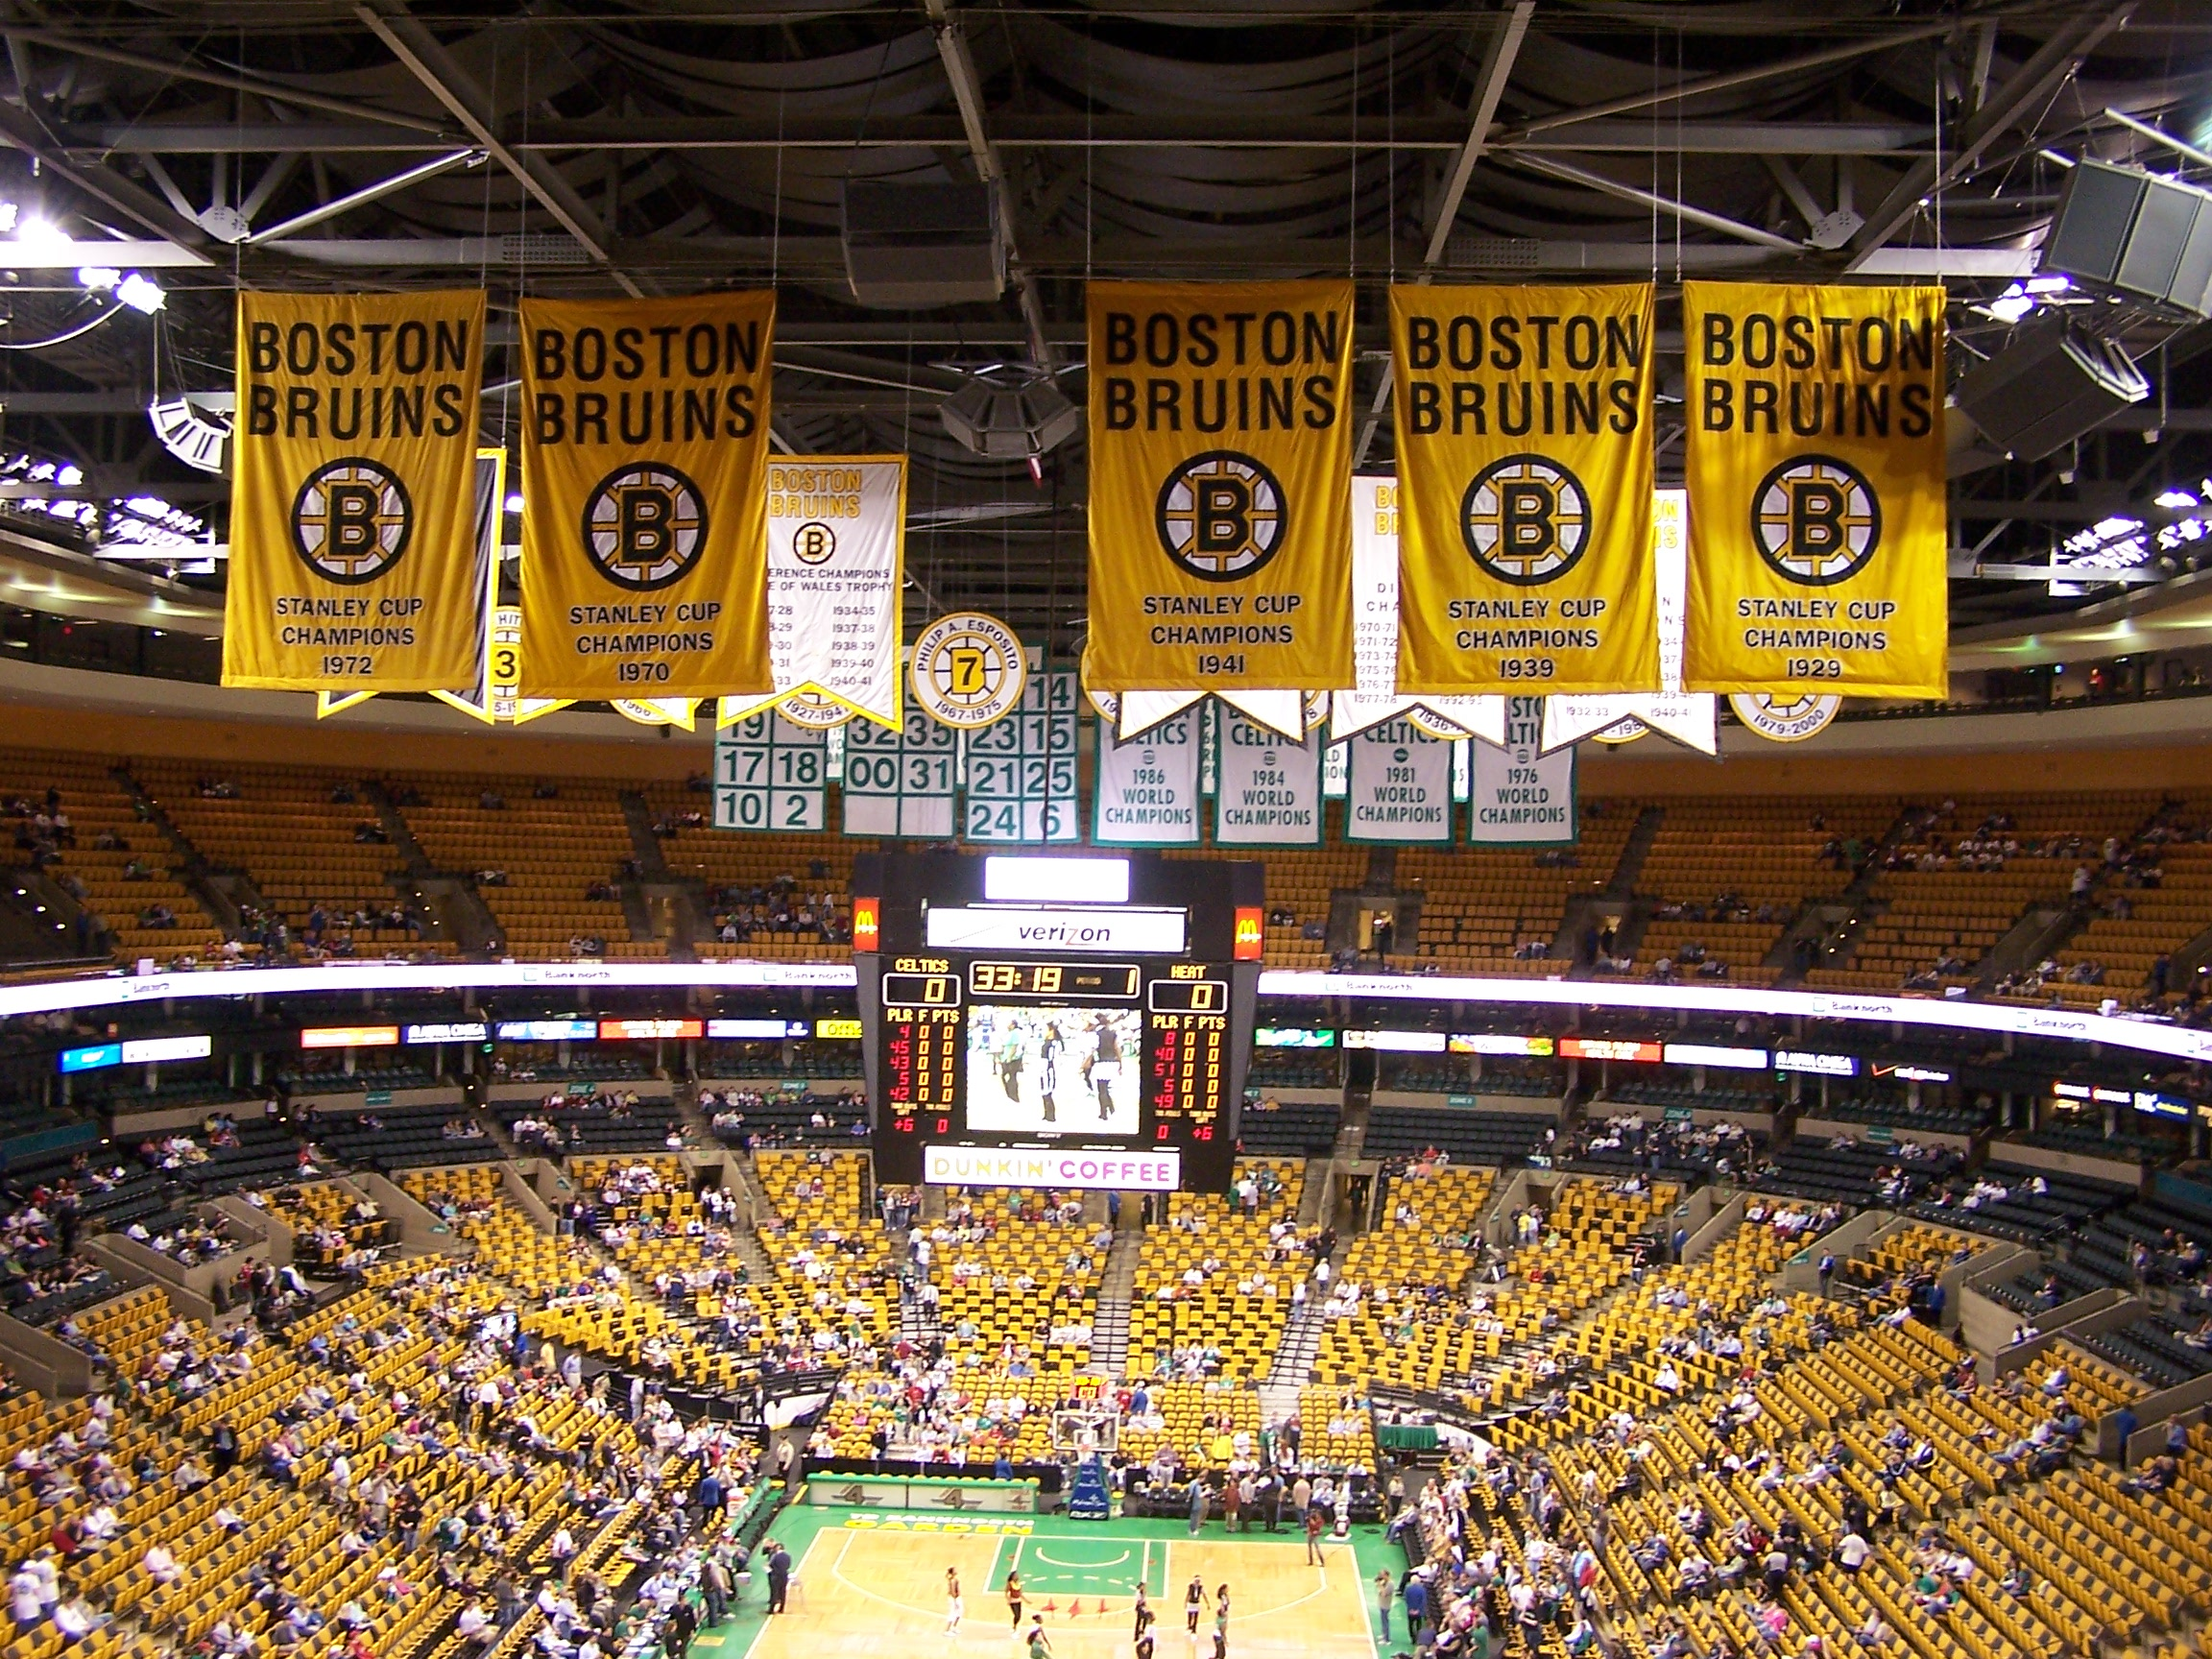 boston td garden. Inside The TD Bank North Garden* Read New Book By John Macdonald United States Of Israel * It Says Jewish Mafia And Italian Greg Borowik \u2026 Boston Td Garden